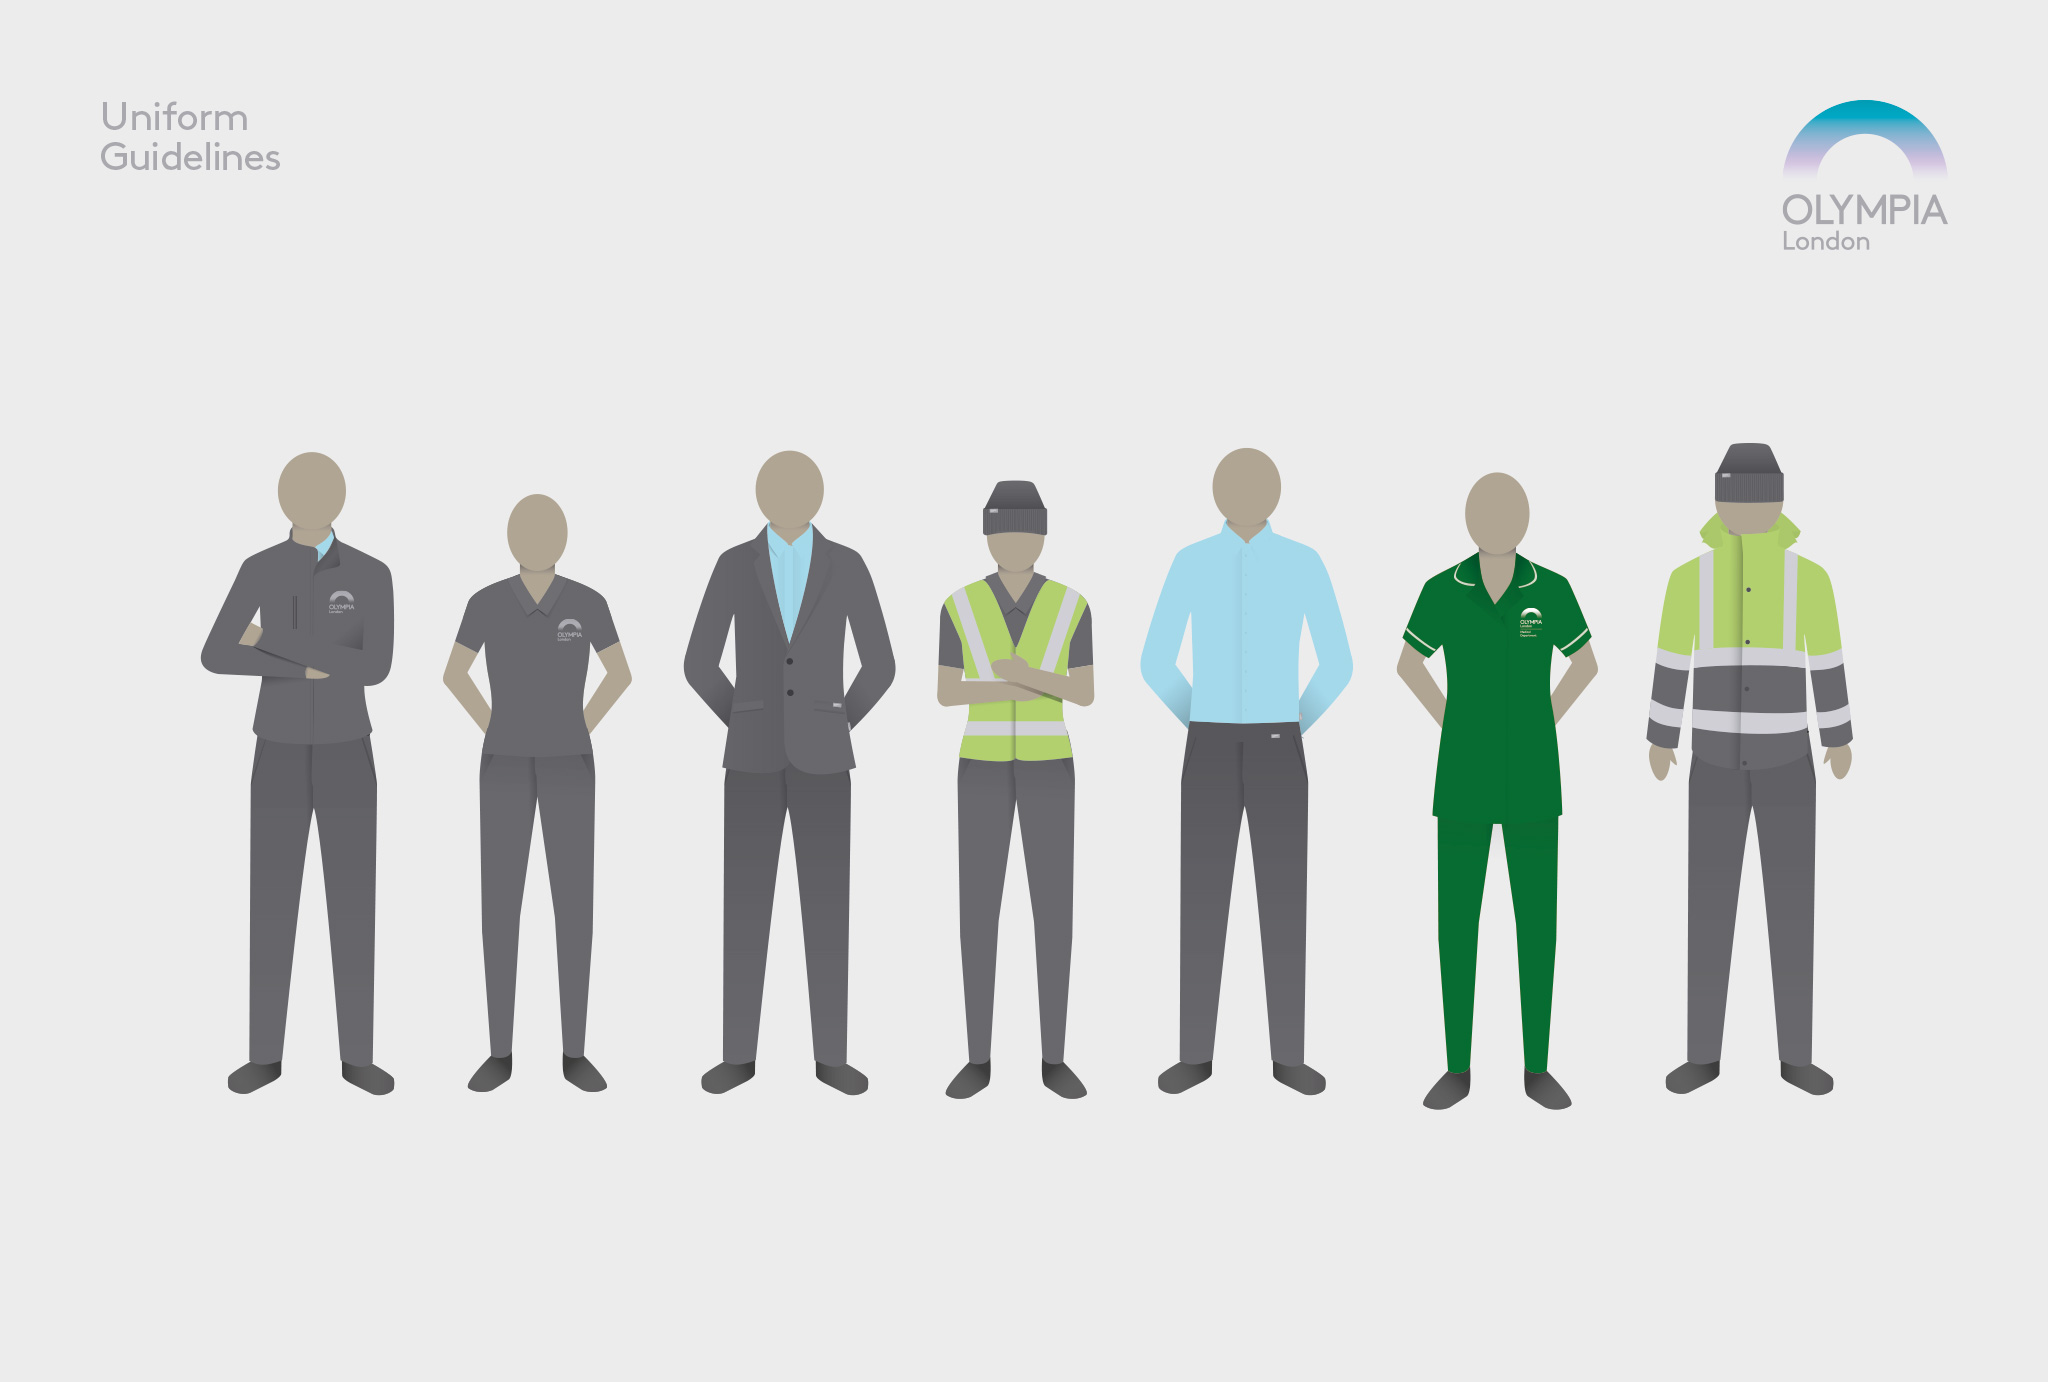 uniform guidelines in a illustration with several people